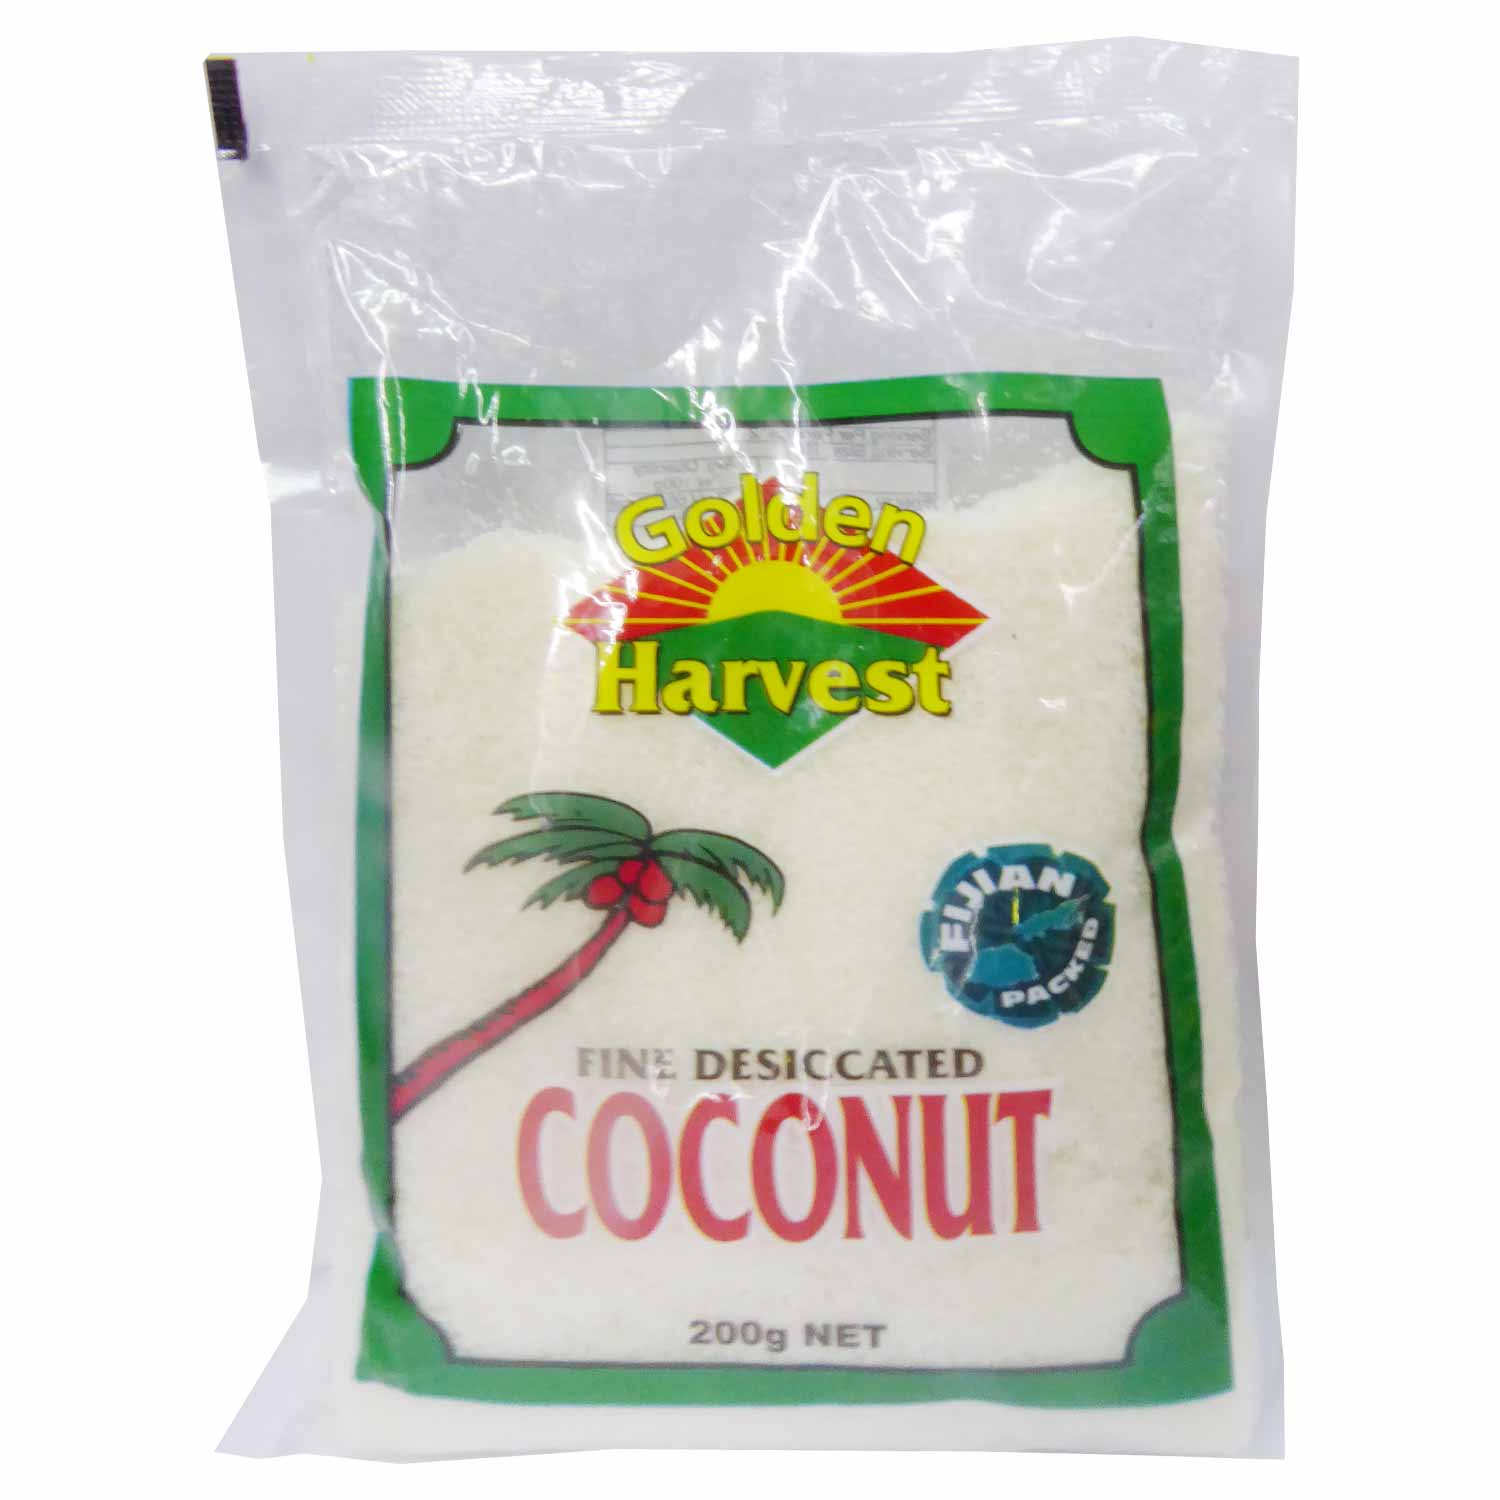 Golden Harvest Dessicated Coconut 200g